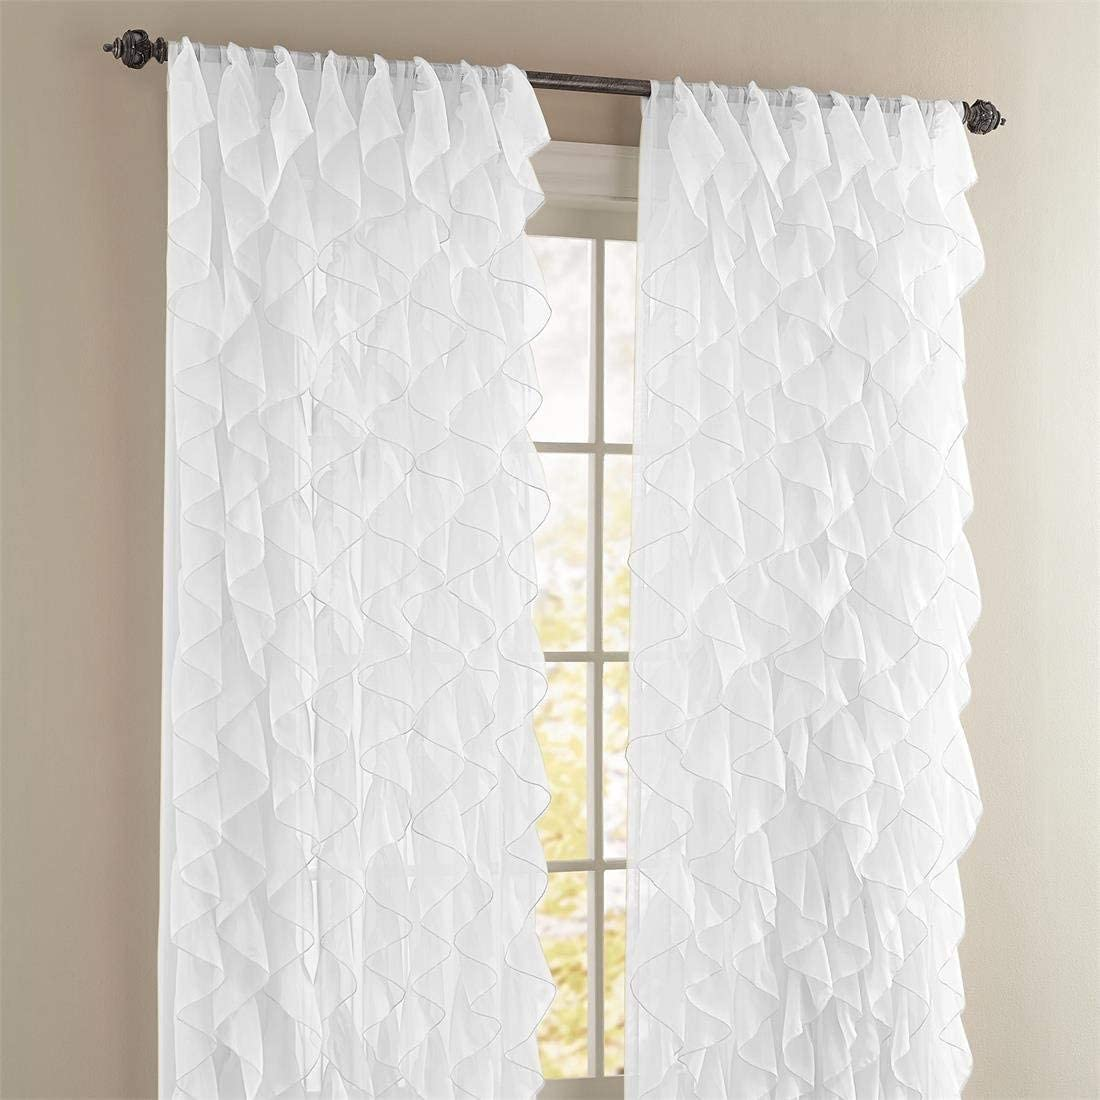 Rooney 2PC Sheer Voile Ruffled Curtain White lowest price 63